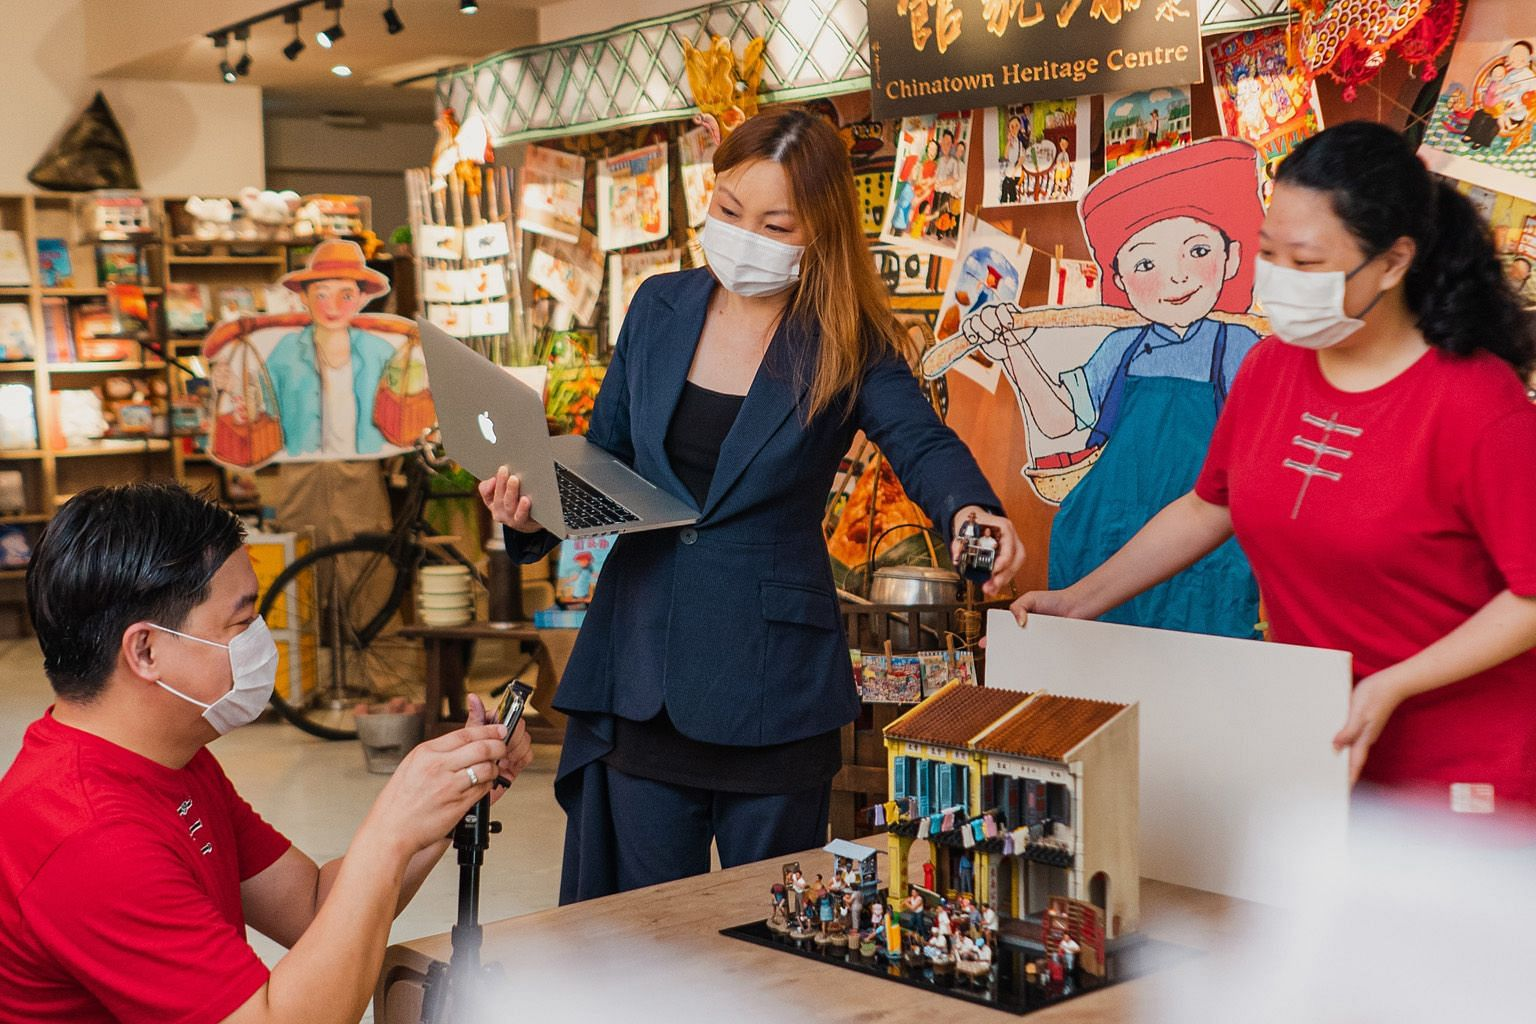 Chinatown Heritage Centre director Margaret Zhang and her team taking product photos for the centre's e-shop, which was launched on June 29 after the team attended a United Overseas Bank workshop advising small and medium-sized enterprises on how to